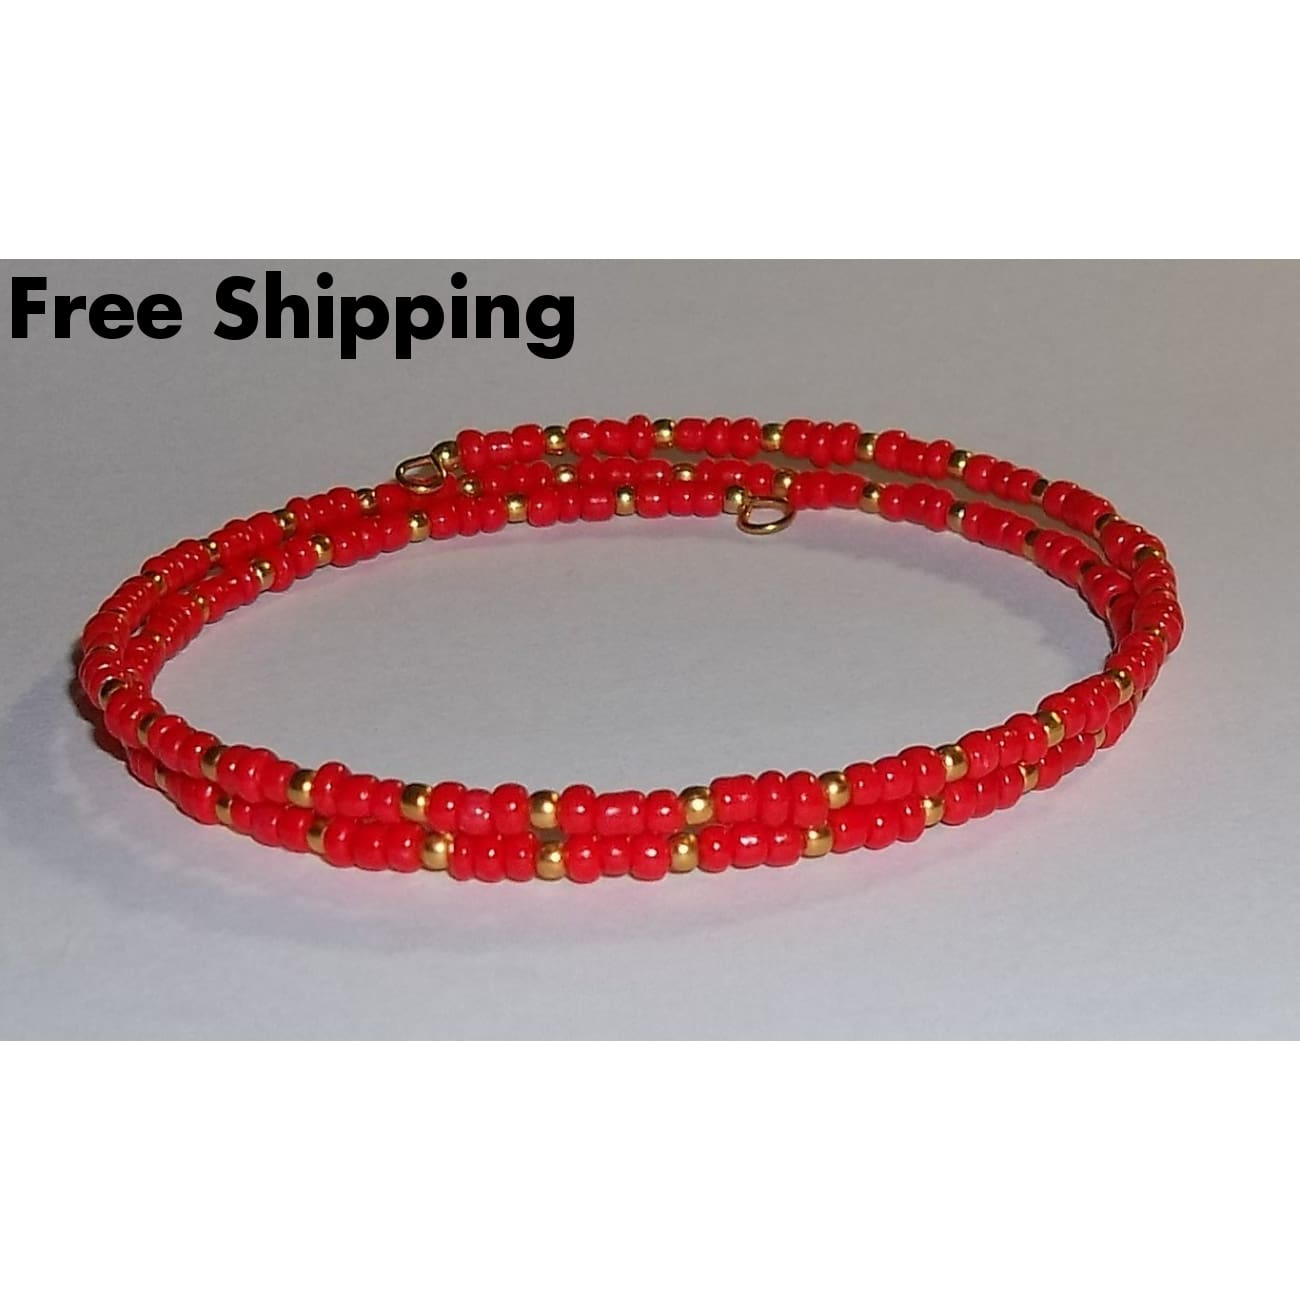 Red & Gold Glass Beaded Artisan Crafted Stackables Wrap Bracelet (S-M) - New Arrival